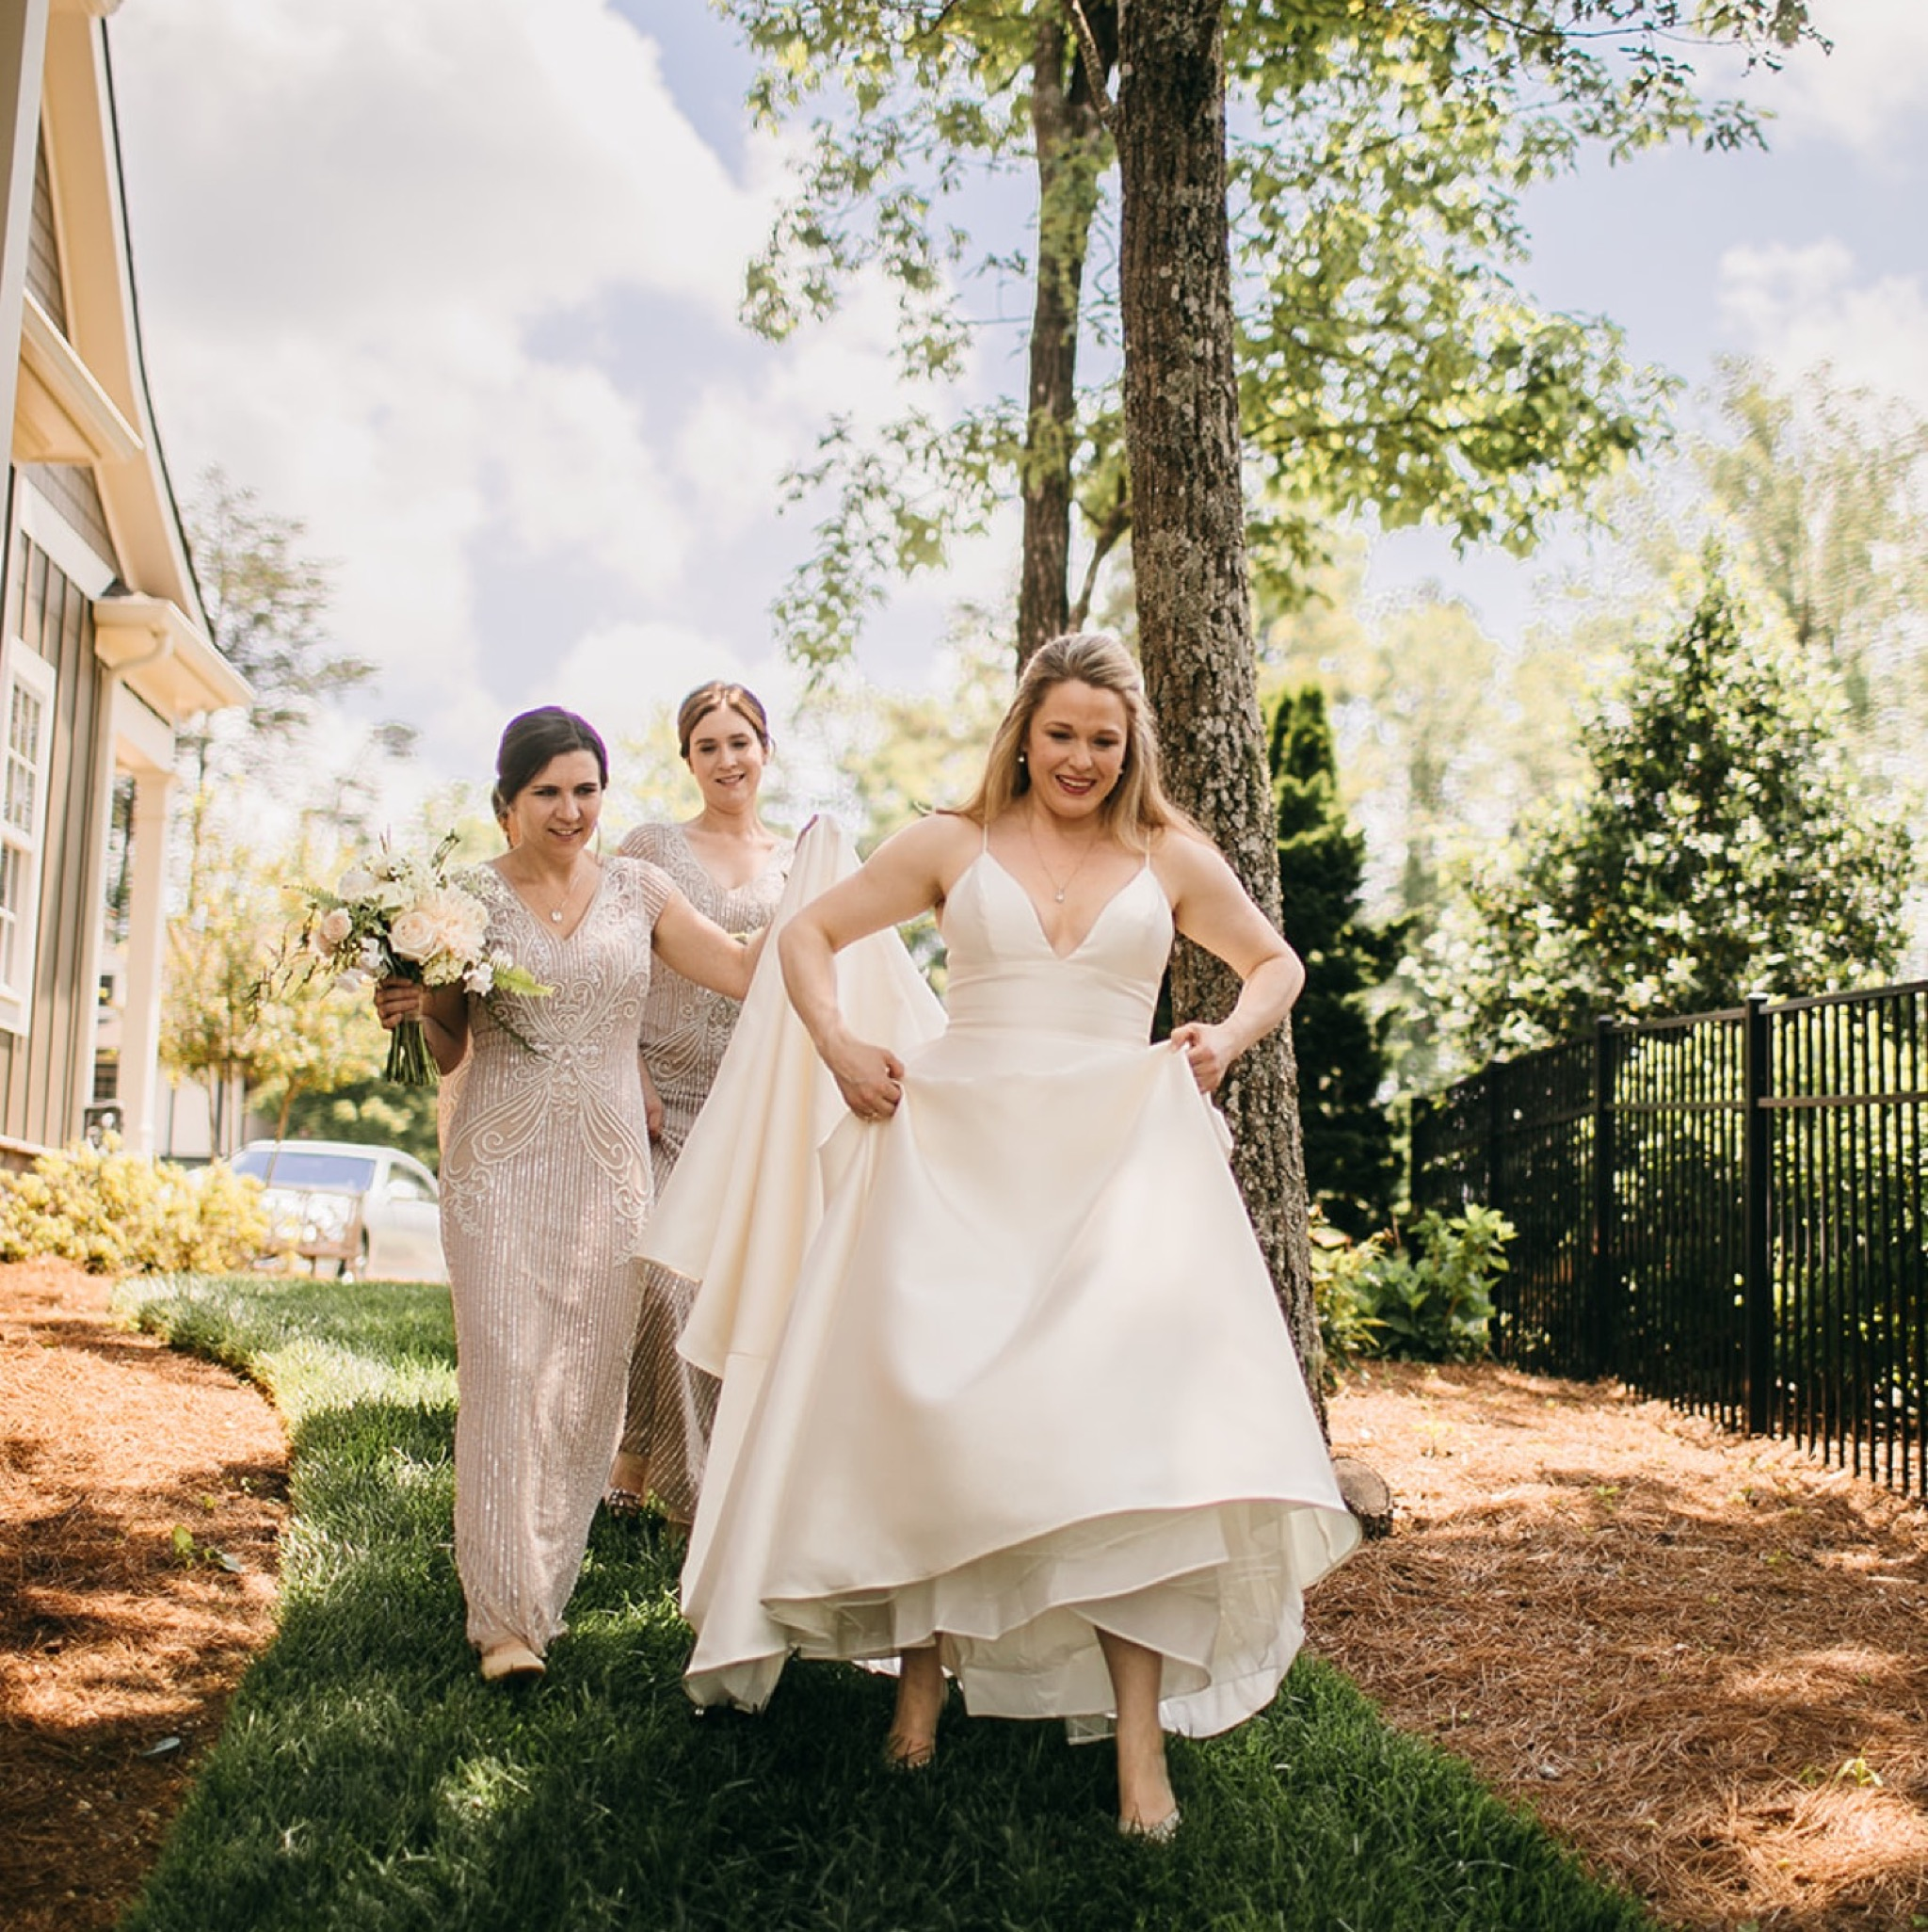 bride holds up her dress as she walks through green grass; bridesmaids carry her train behind her.